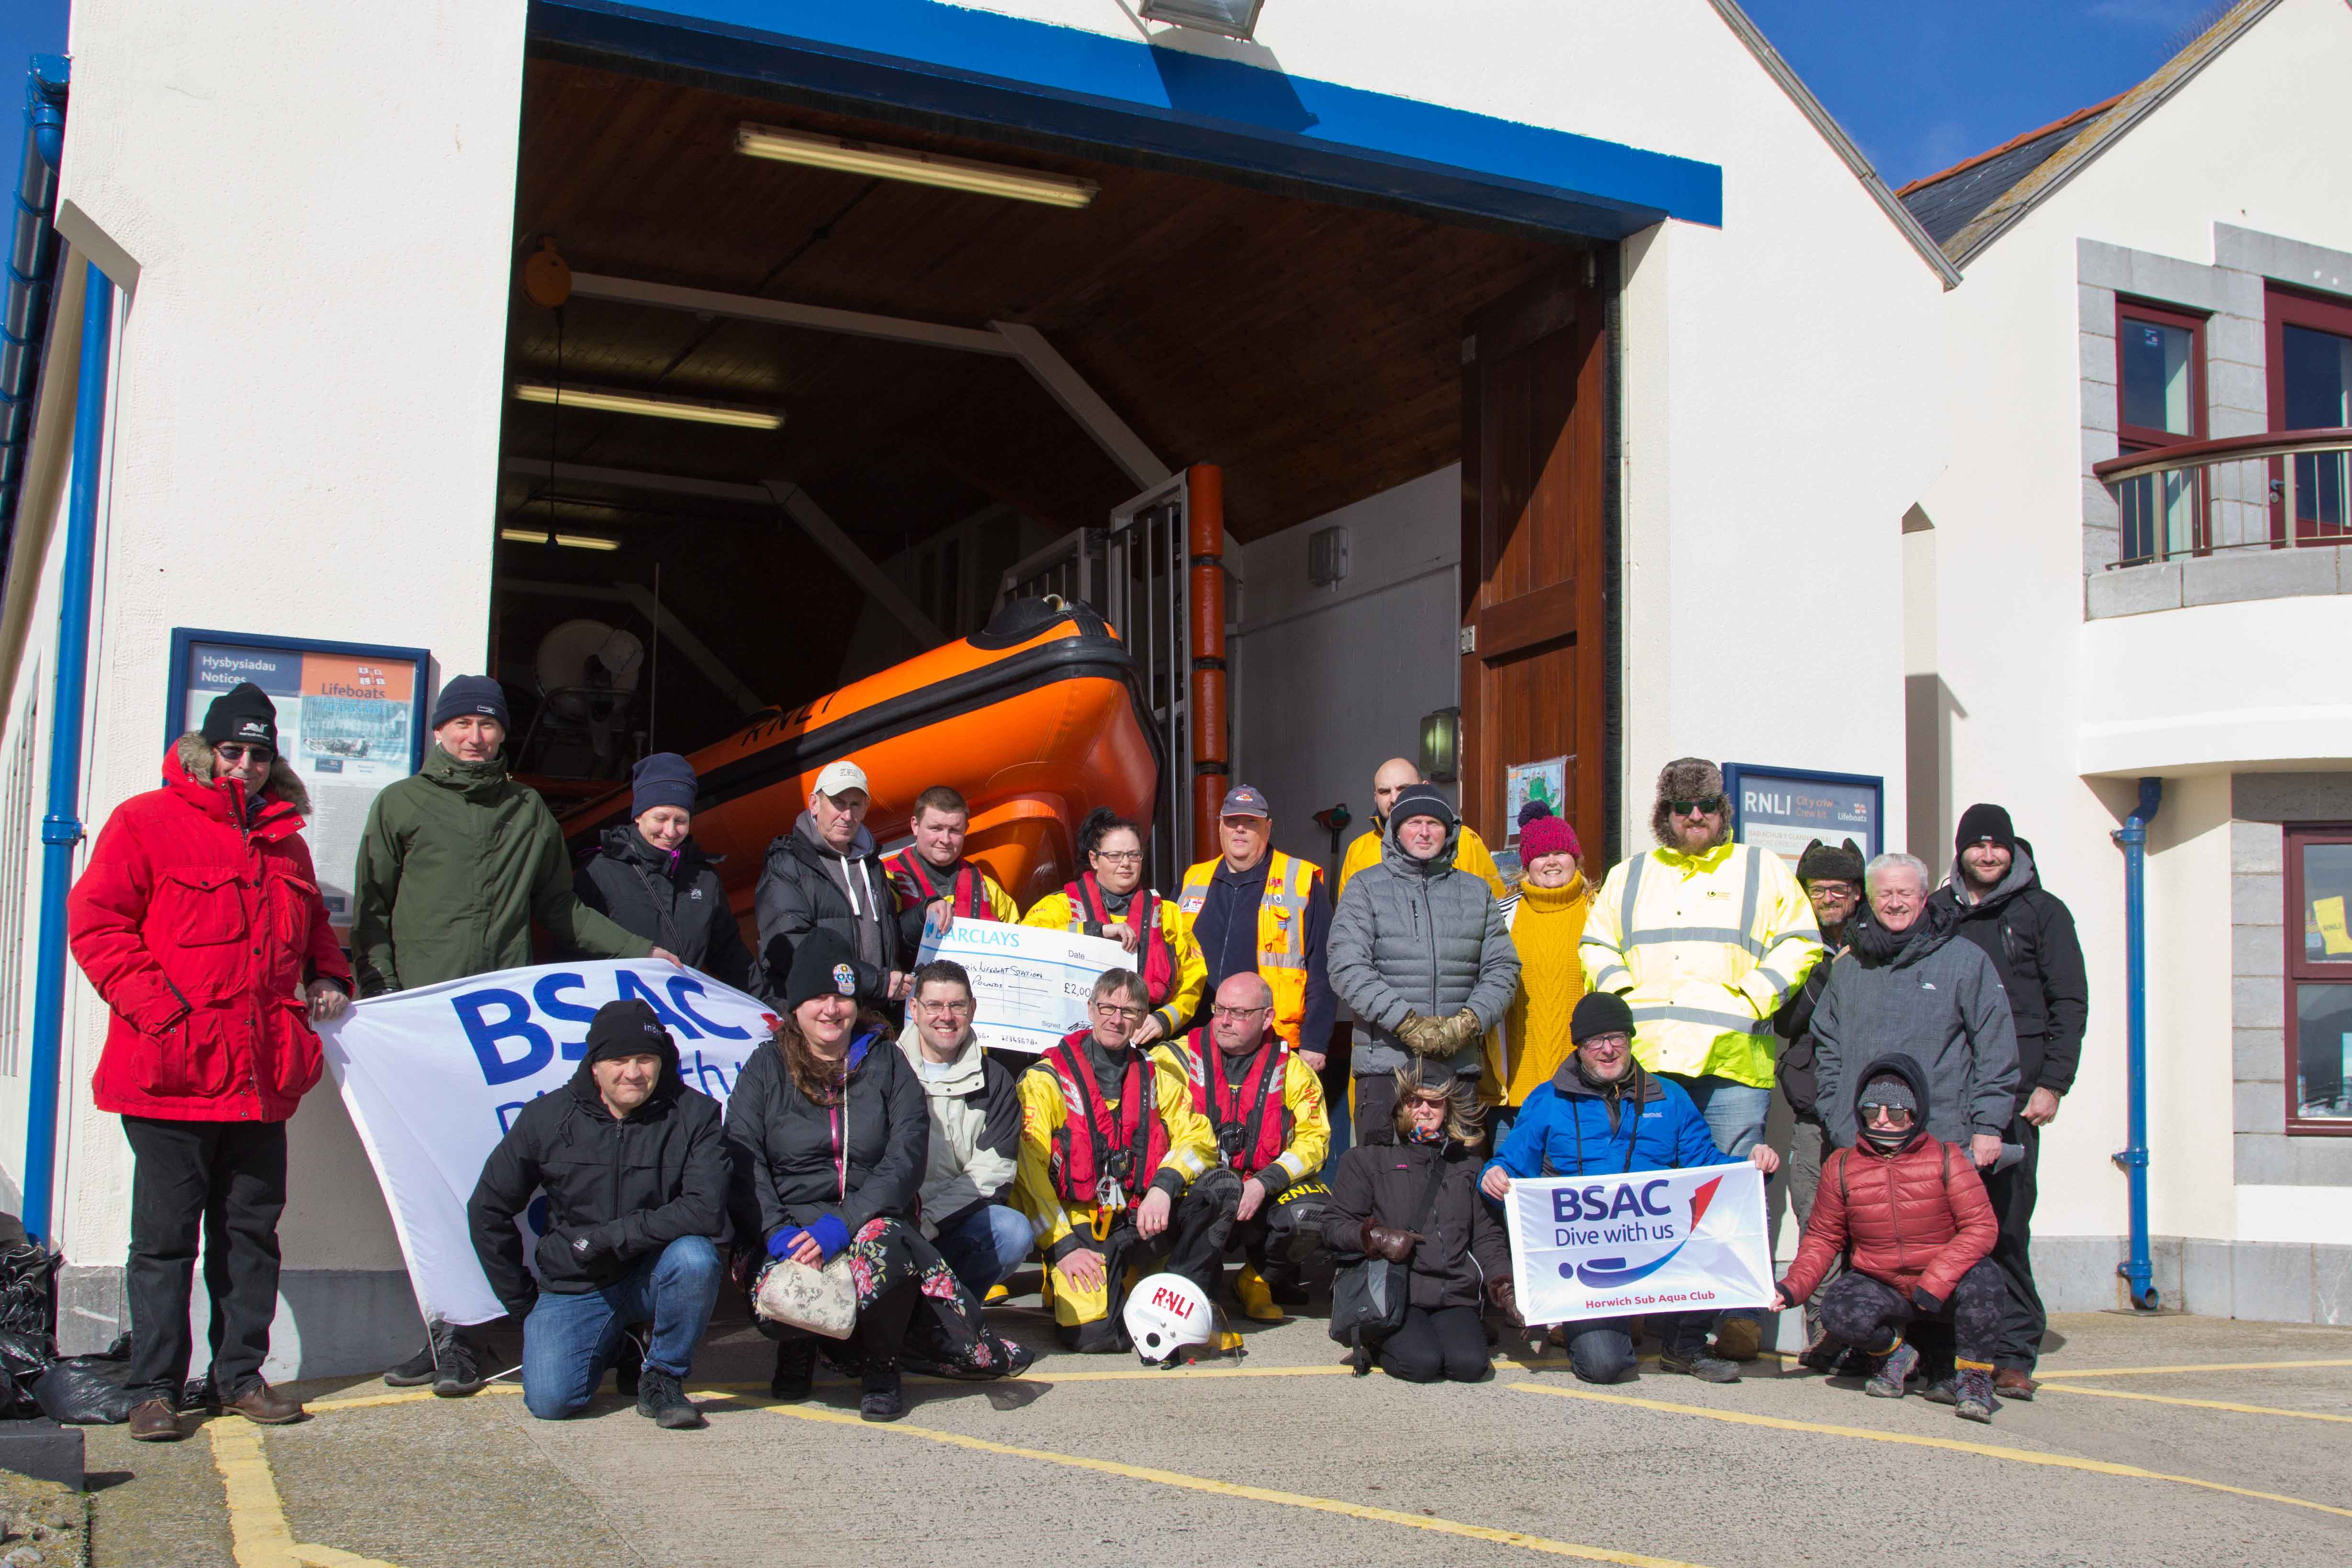 Presentation by members of various Britsh Sub-Aqua Clubs to Beaumaris Lifeboat